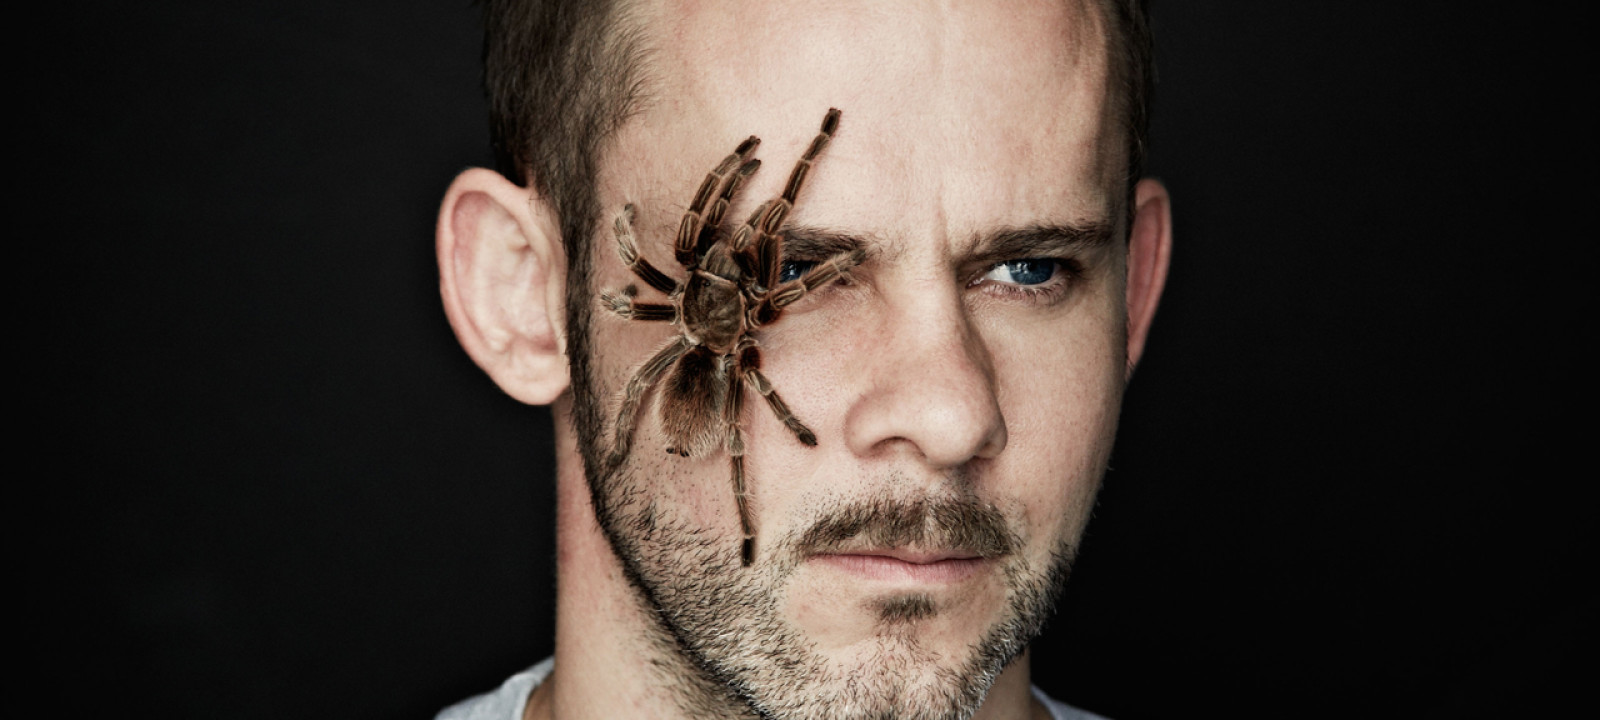 Dominic Monaghan spider